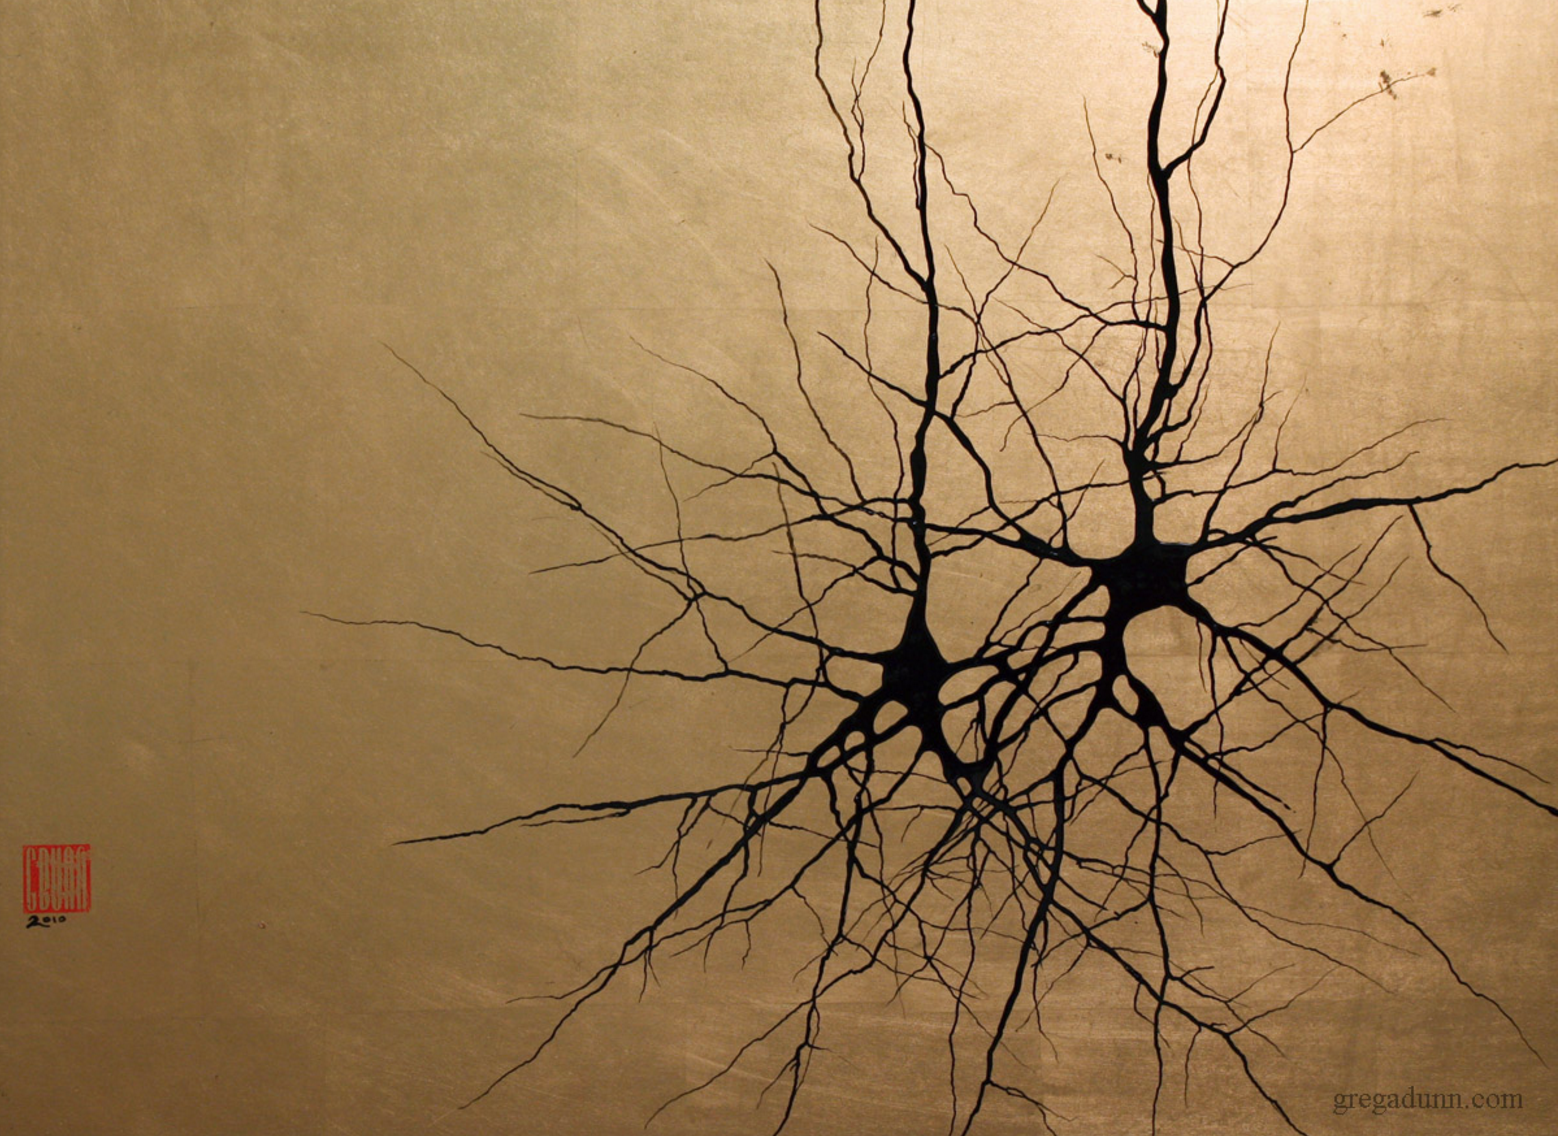 """""""Two Pyramidals."""" Pyramidal cells are neurons found in the brain that integrate information received from their dendrites (the branches at the bottom of the cell), process it, and transmit it to other cells through their axons (the large branches emerging upward from each cell). Enamel on composition gold leaf, 18″ X 24."""" © Greg Dunn, 2009. Commissioned by the Center of the Neural Basis of Cognition, Carnegie Mellon University"""